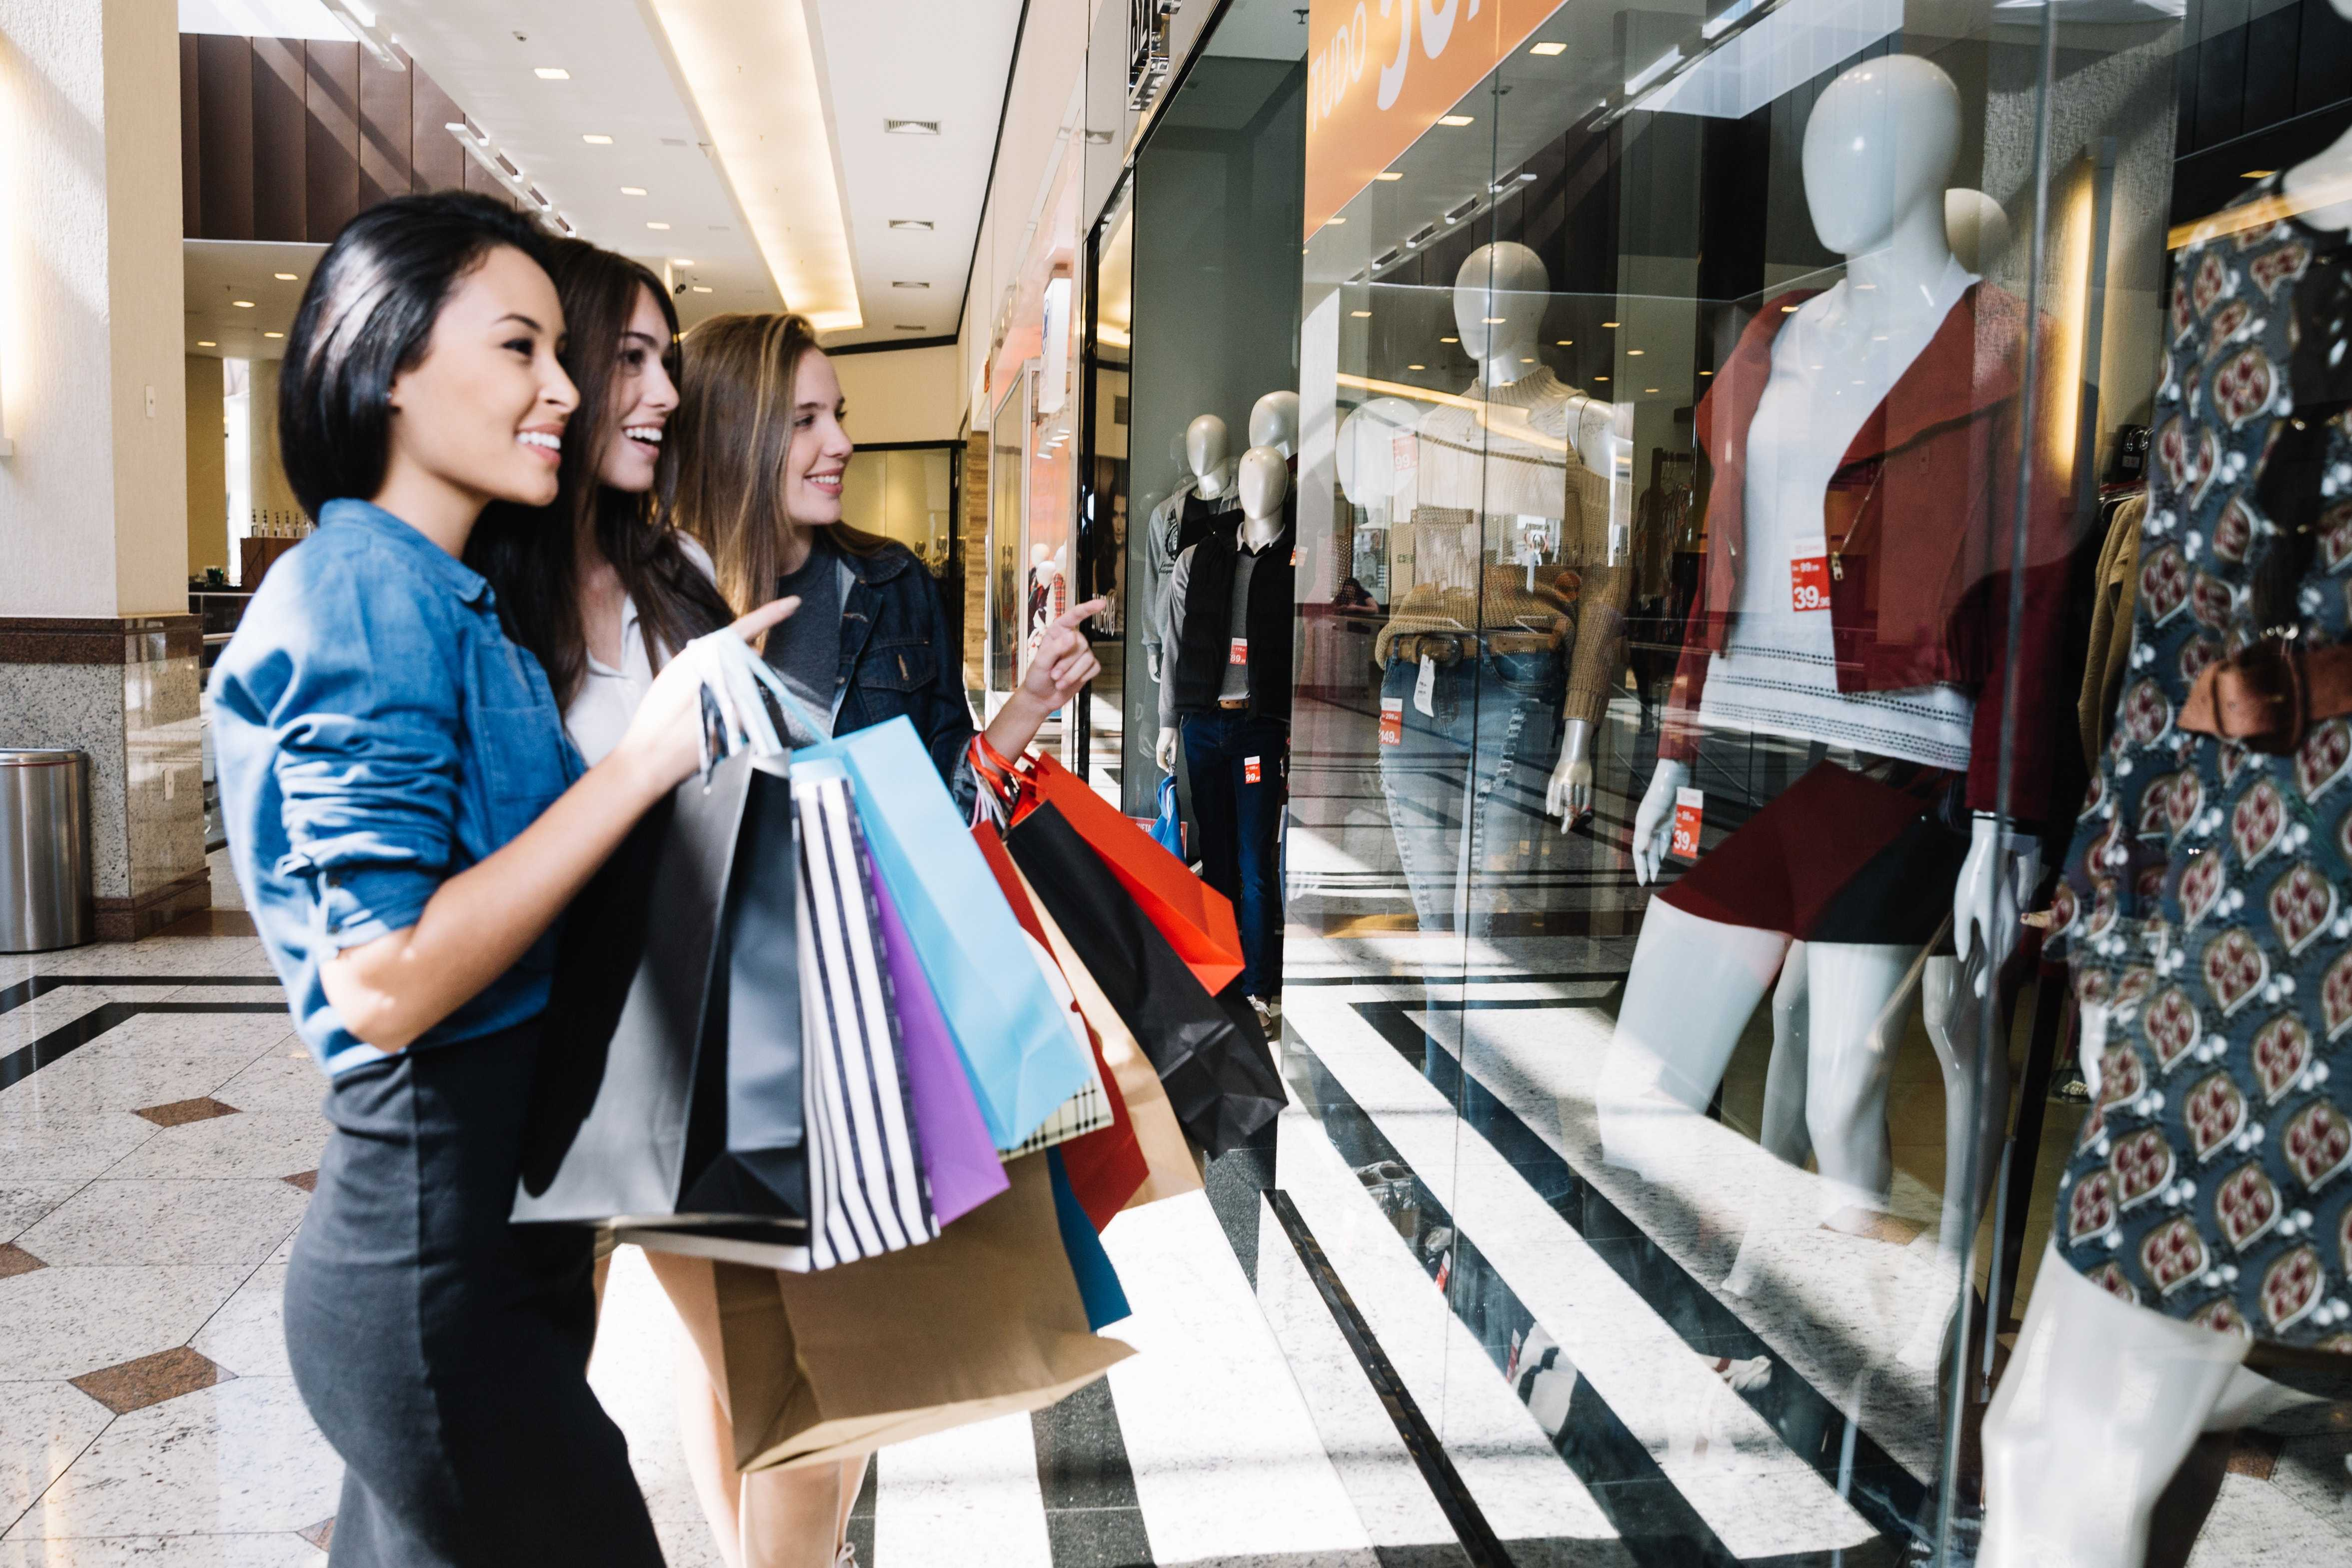 Will 'Brick-and-Mortar' Survive Alongside Online?